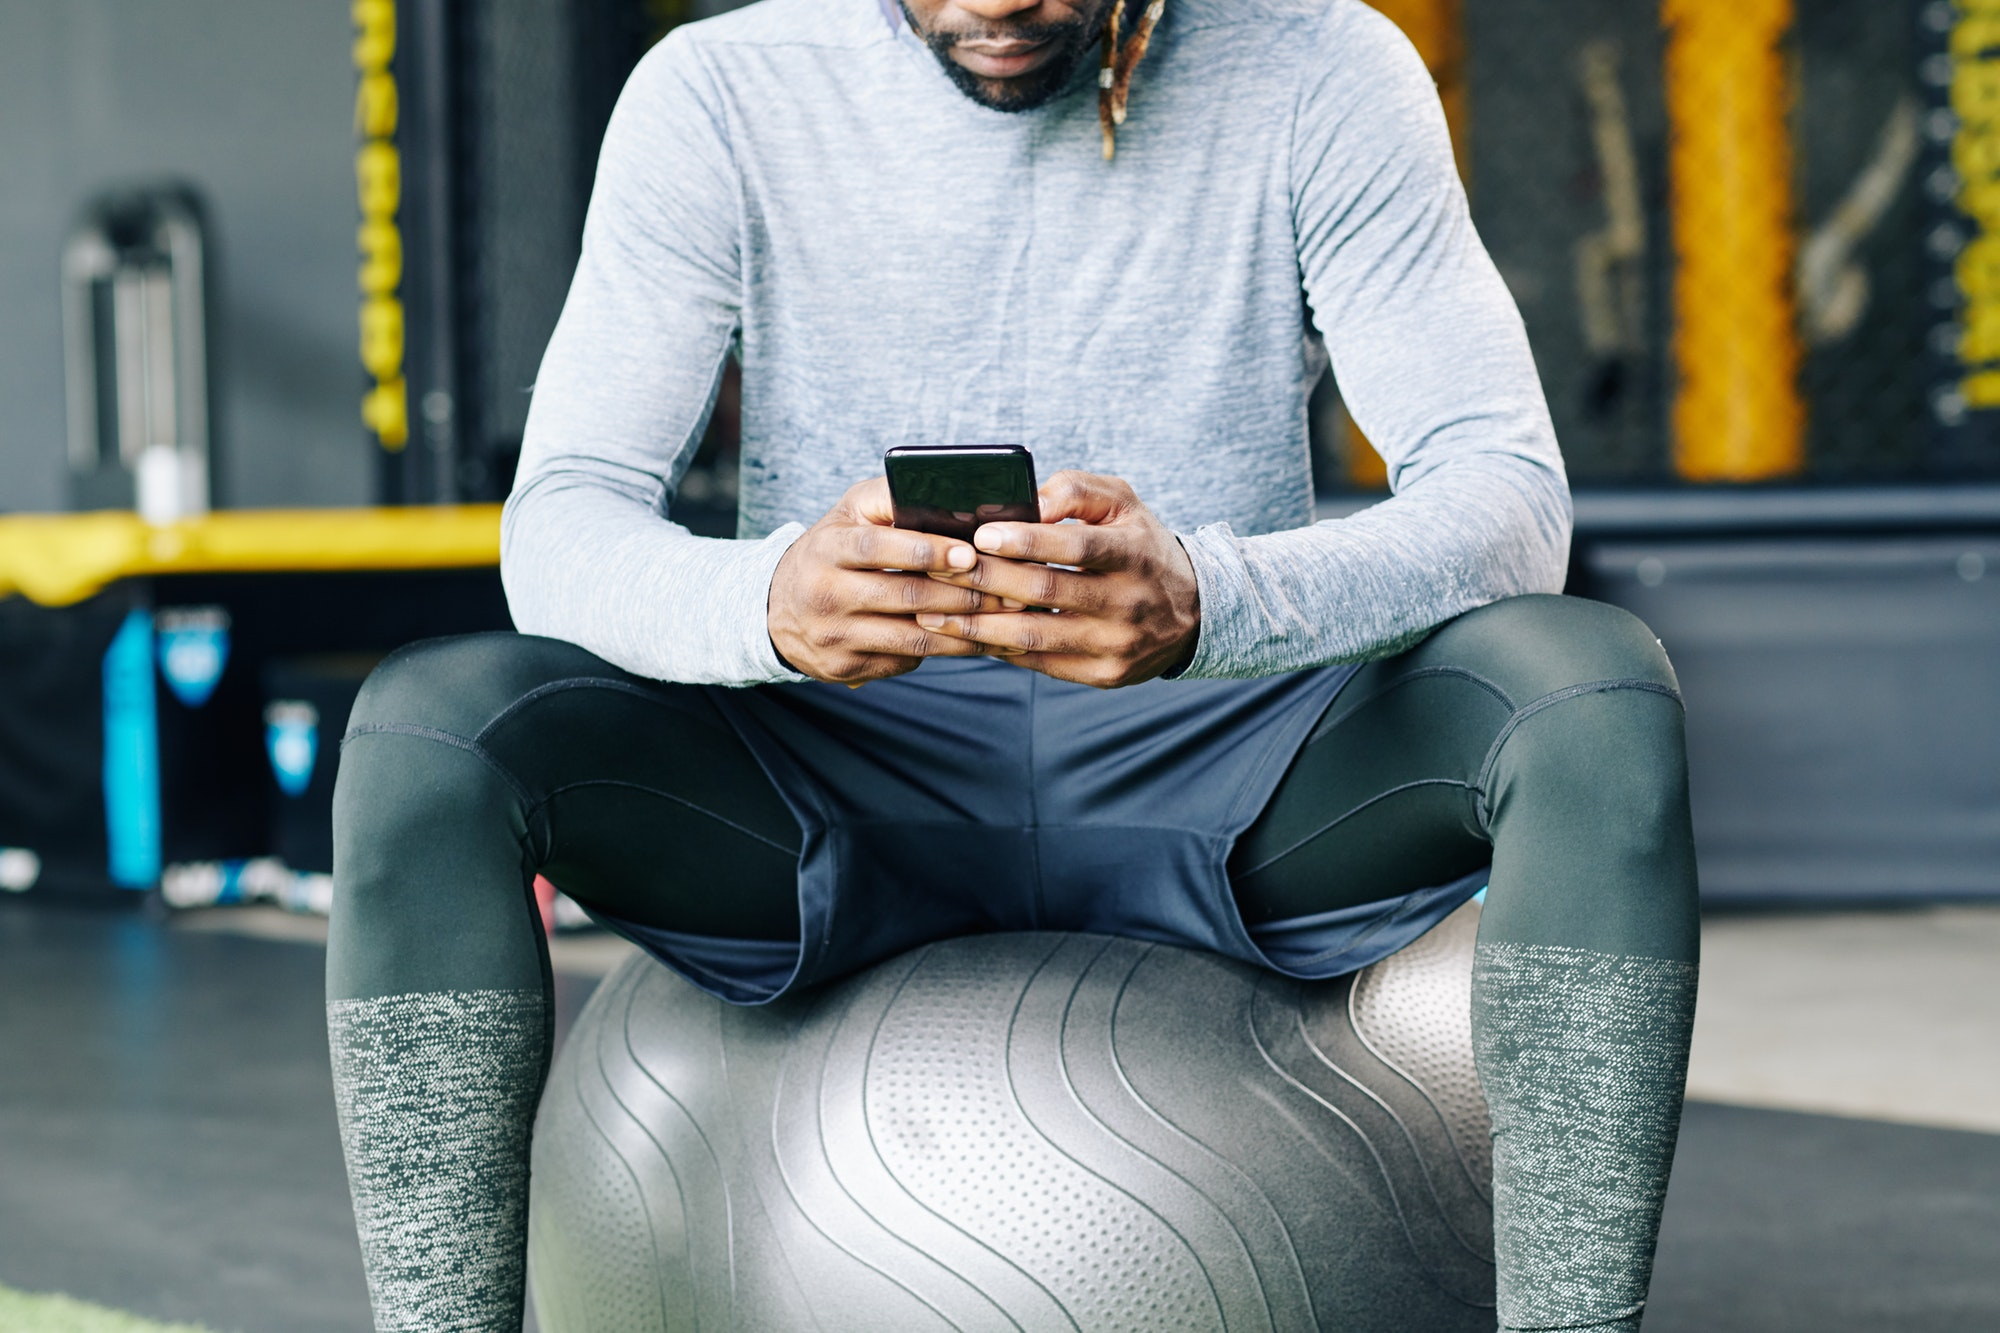 A man in a gym checks his mobile phone